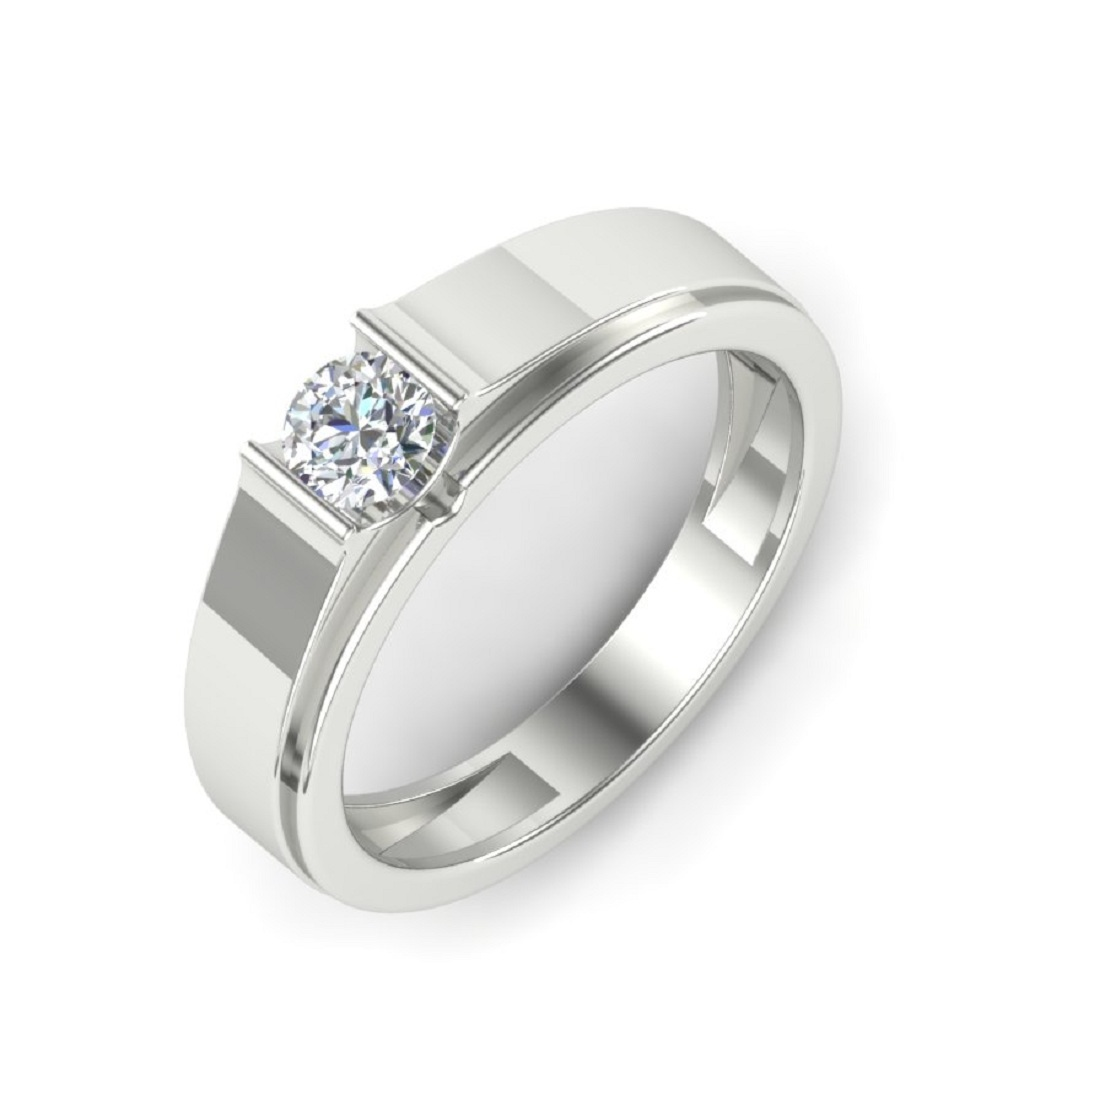 Silver Eternity Bands